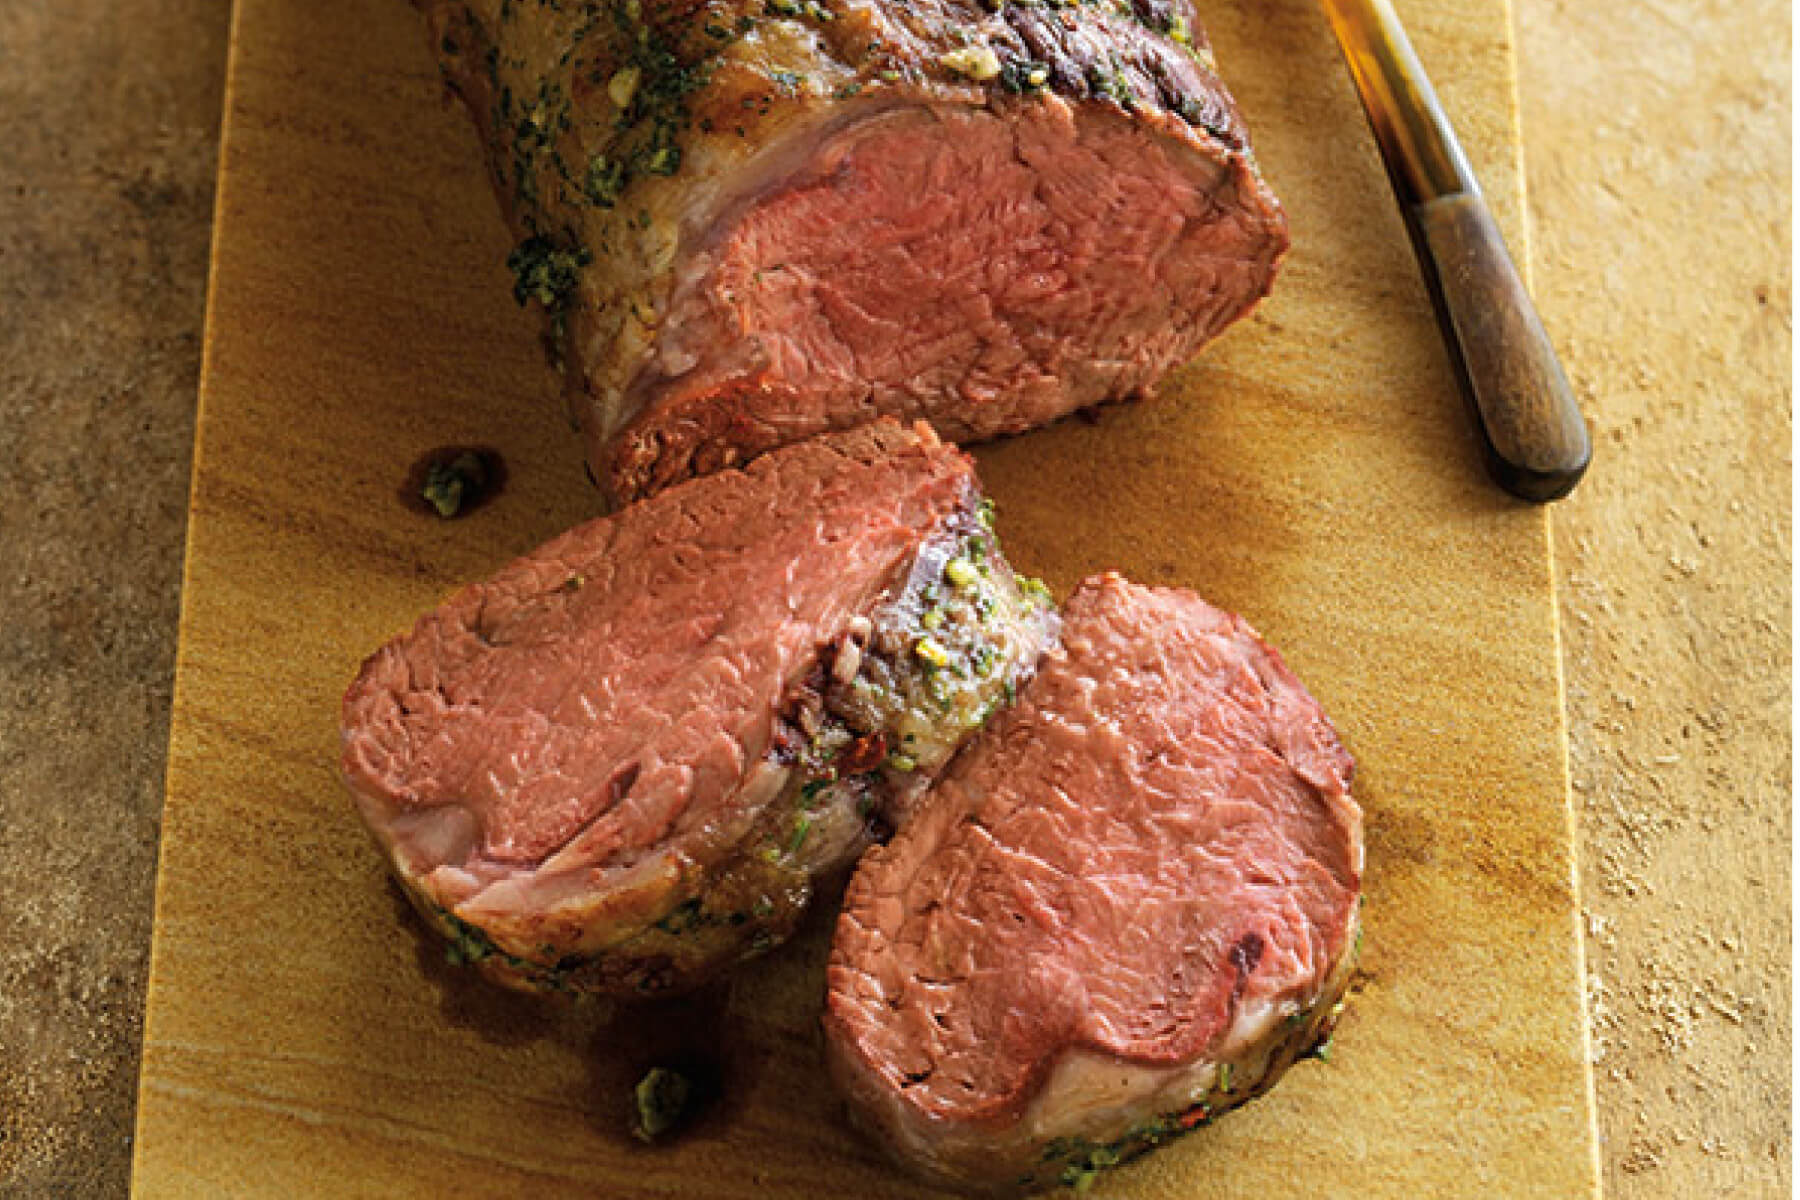 Pesto-Rubbed Ribeye Roast